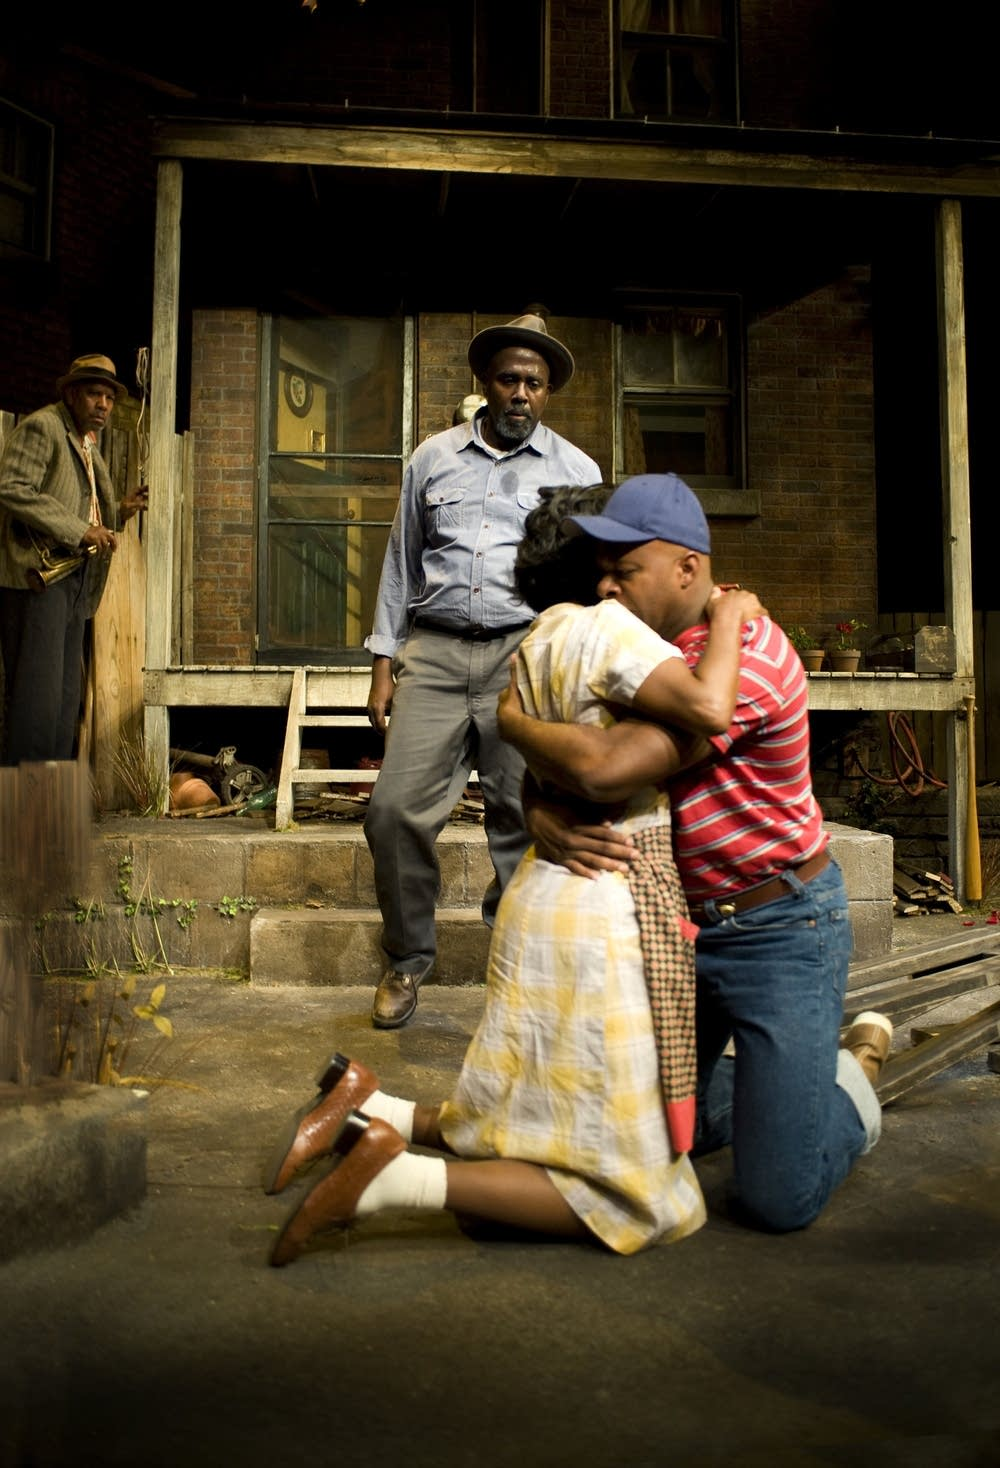 relationship between troy and lyons in fences by august wilson August wilson's fences jump to section: current section overview troy maxson jim bono - troy's friend rose - troy's wife lyons - troy's oldest son by previous marriage gabriel - troy's brother cory - troy and rose's son raynell - troy's daughter.